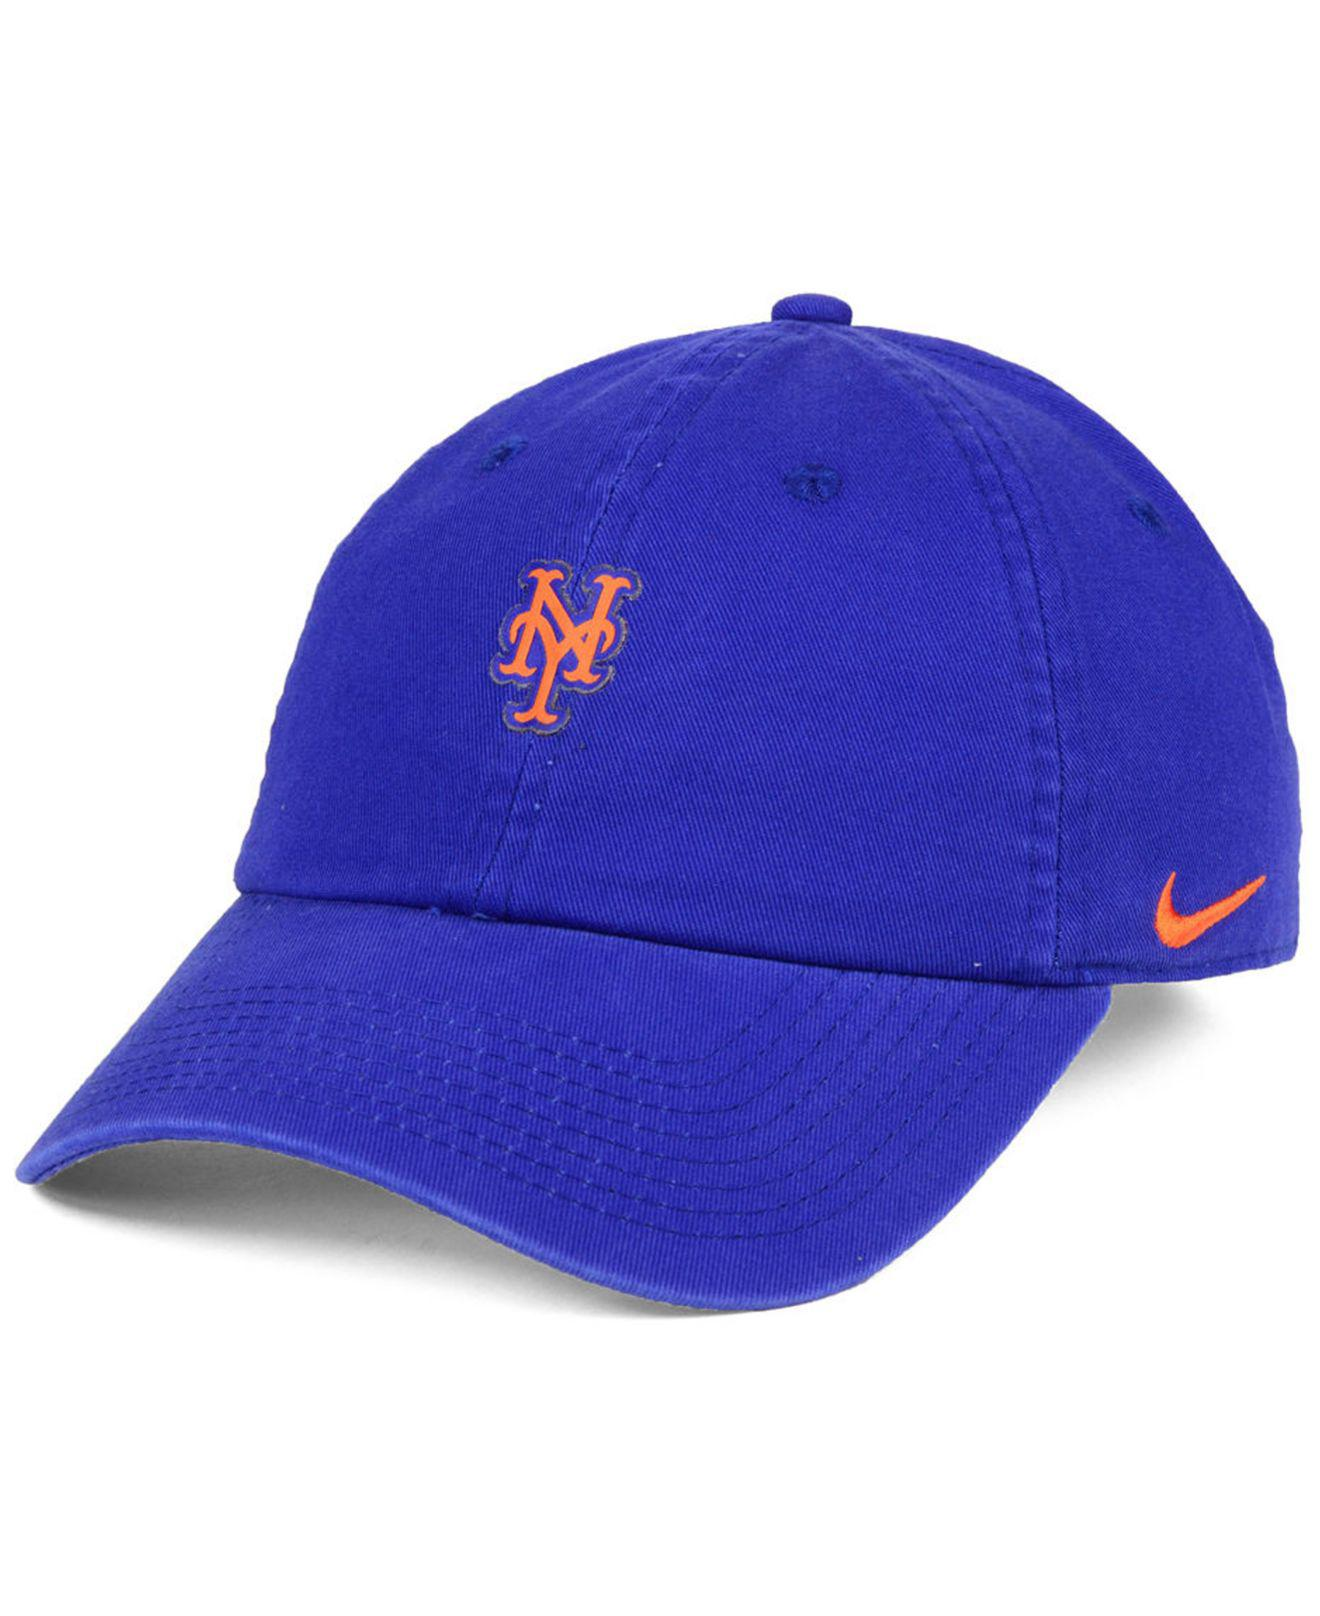 uk availability fb6ec 1f07c closeout new style miami marlins under armour mlb girls renegade twist cap  6b65259teuxn a5be3 41cd1  authentic lyst nike new york mets micro cap in  blue for ...